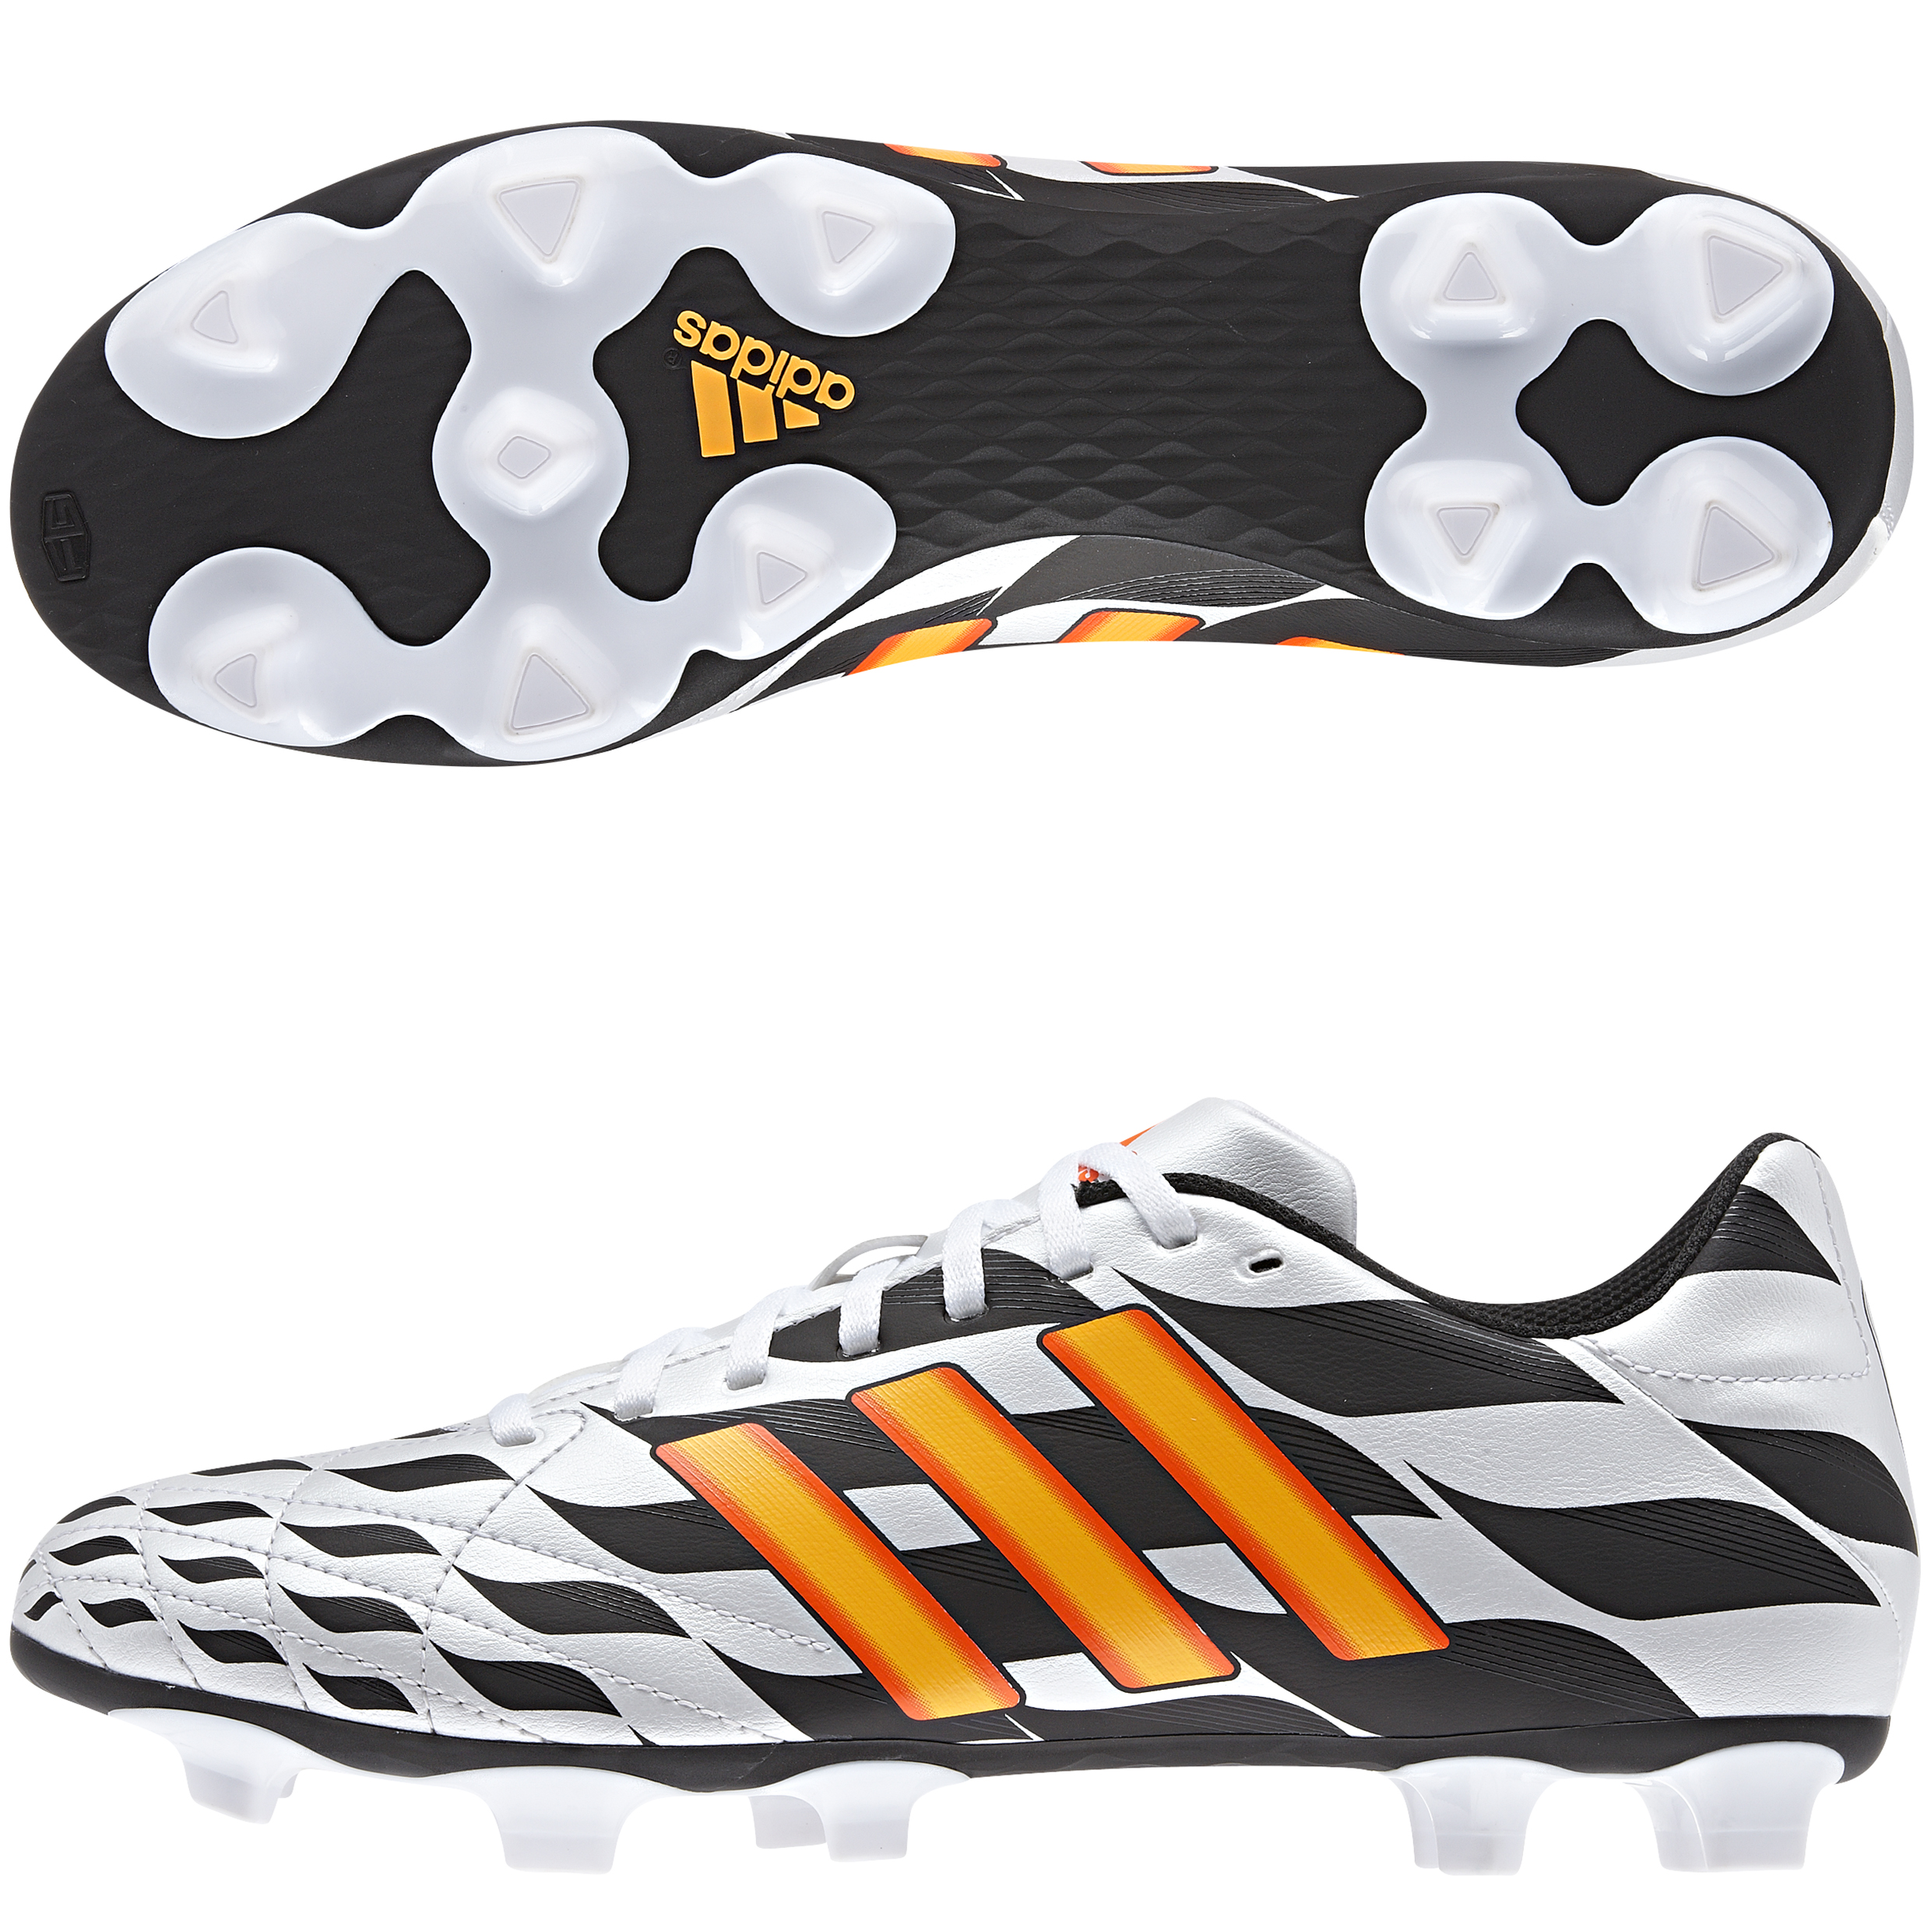 Adidas 11Questra World Cup 2014 Firm Ground Football Boots White